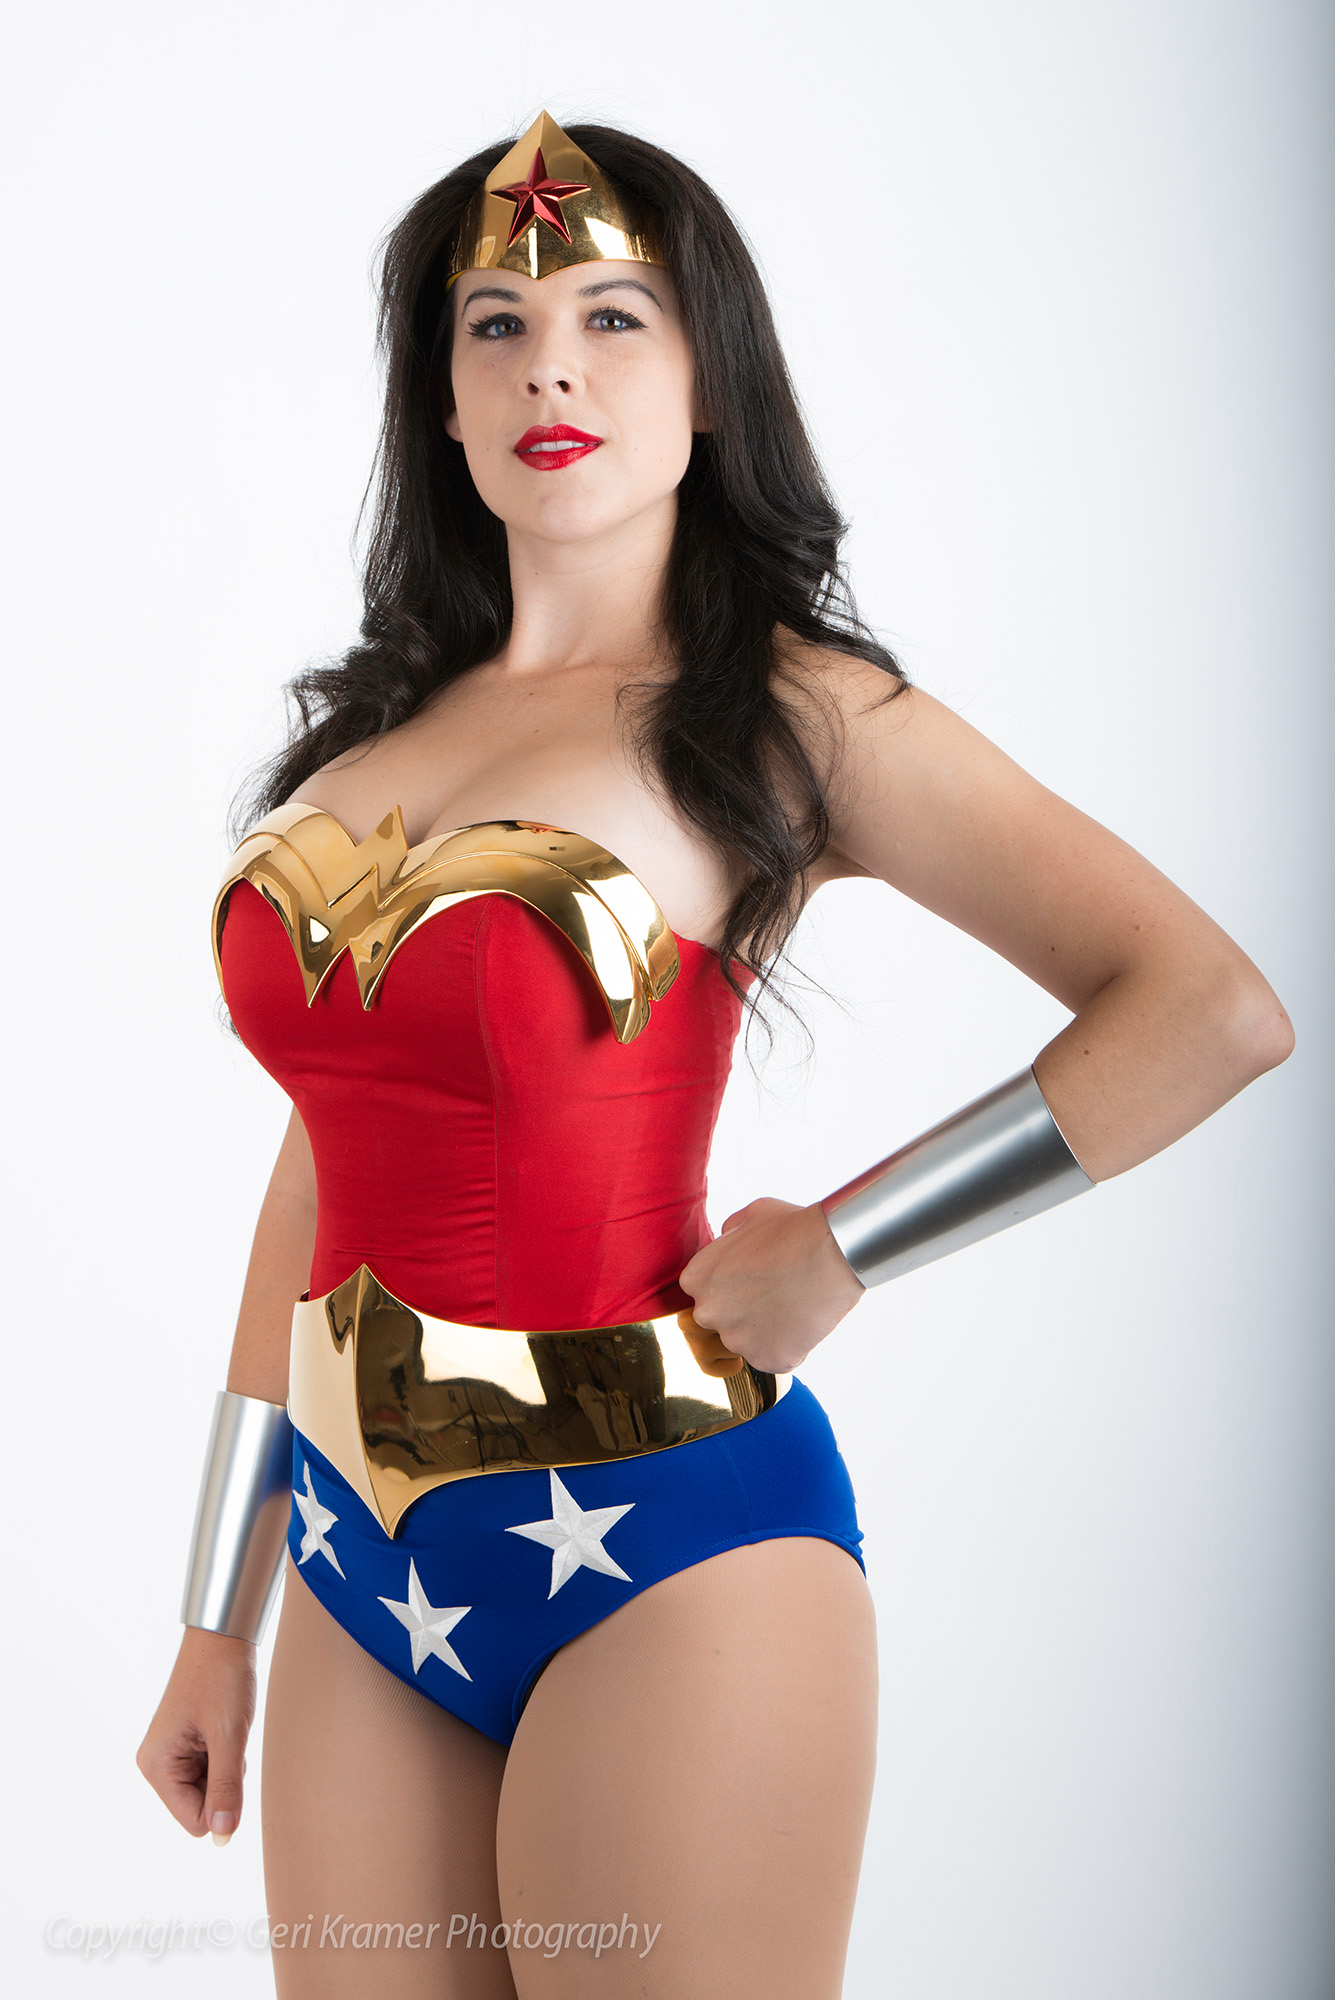 Wonder_Woman-Geri_Kramer (5)